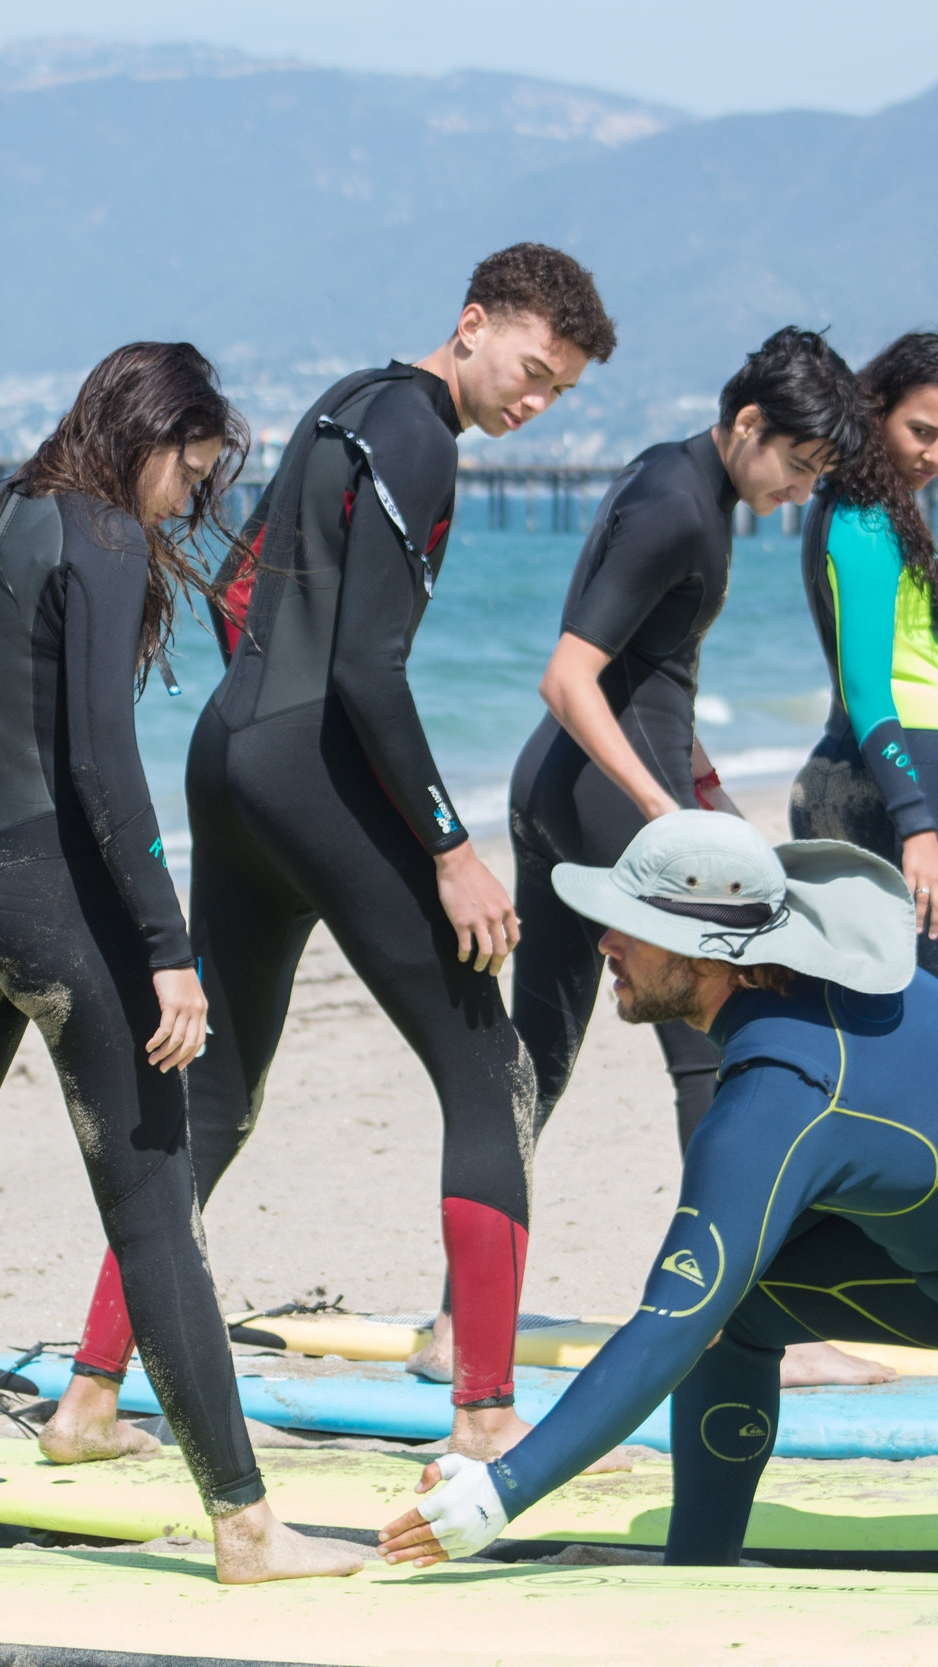 GROUP SURF LESSONS - We will teach you everything you need know to start catching waves.